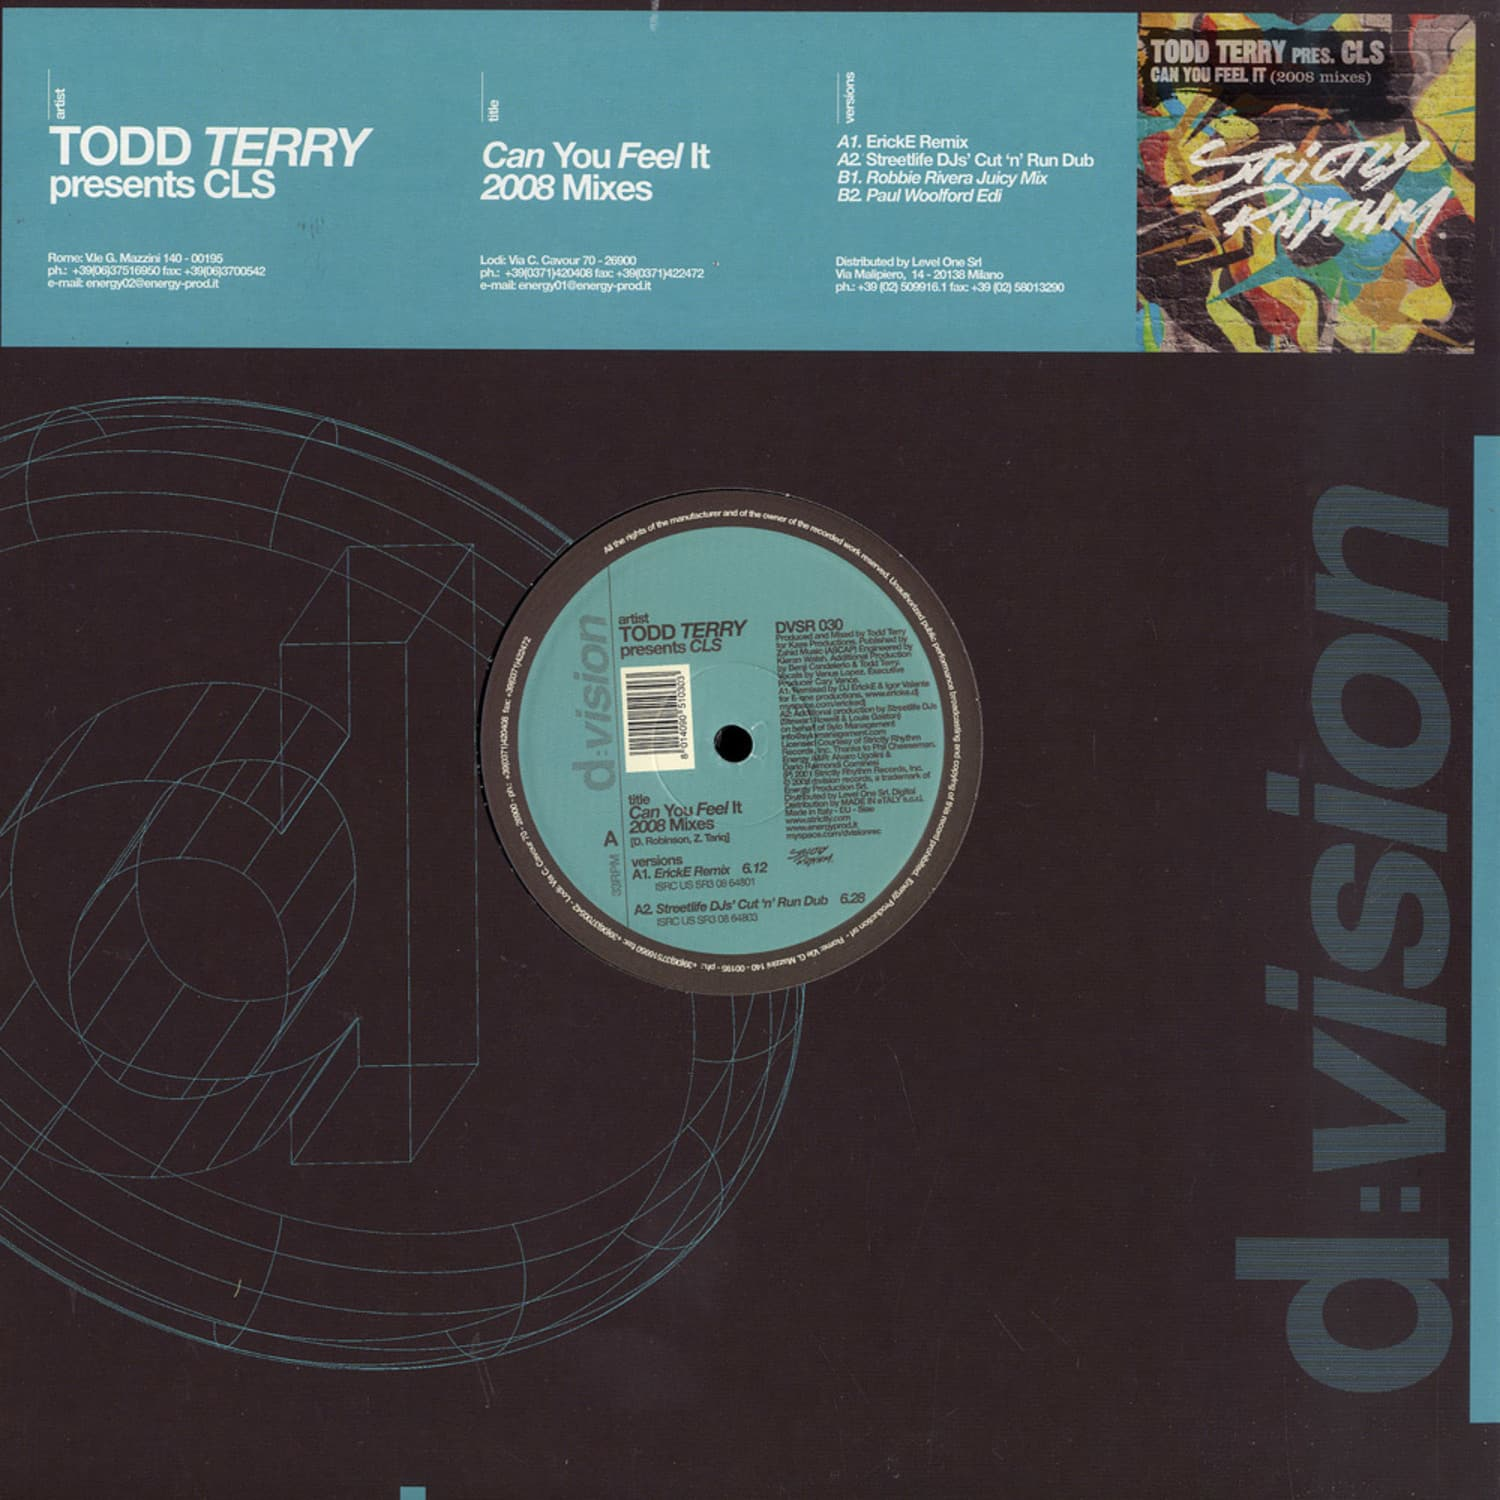 Todd Terry presents CLS - CAN YOU FEEL IT 2008